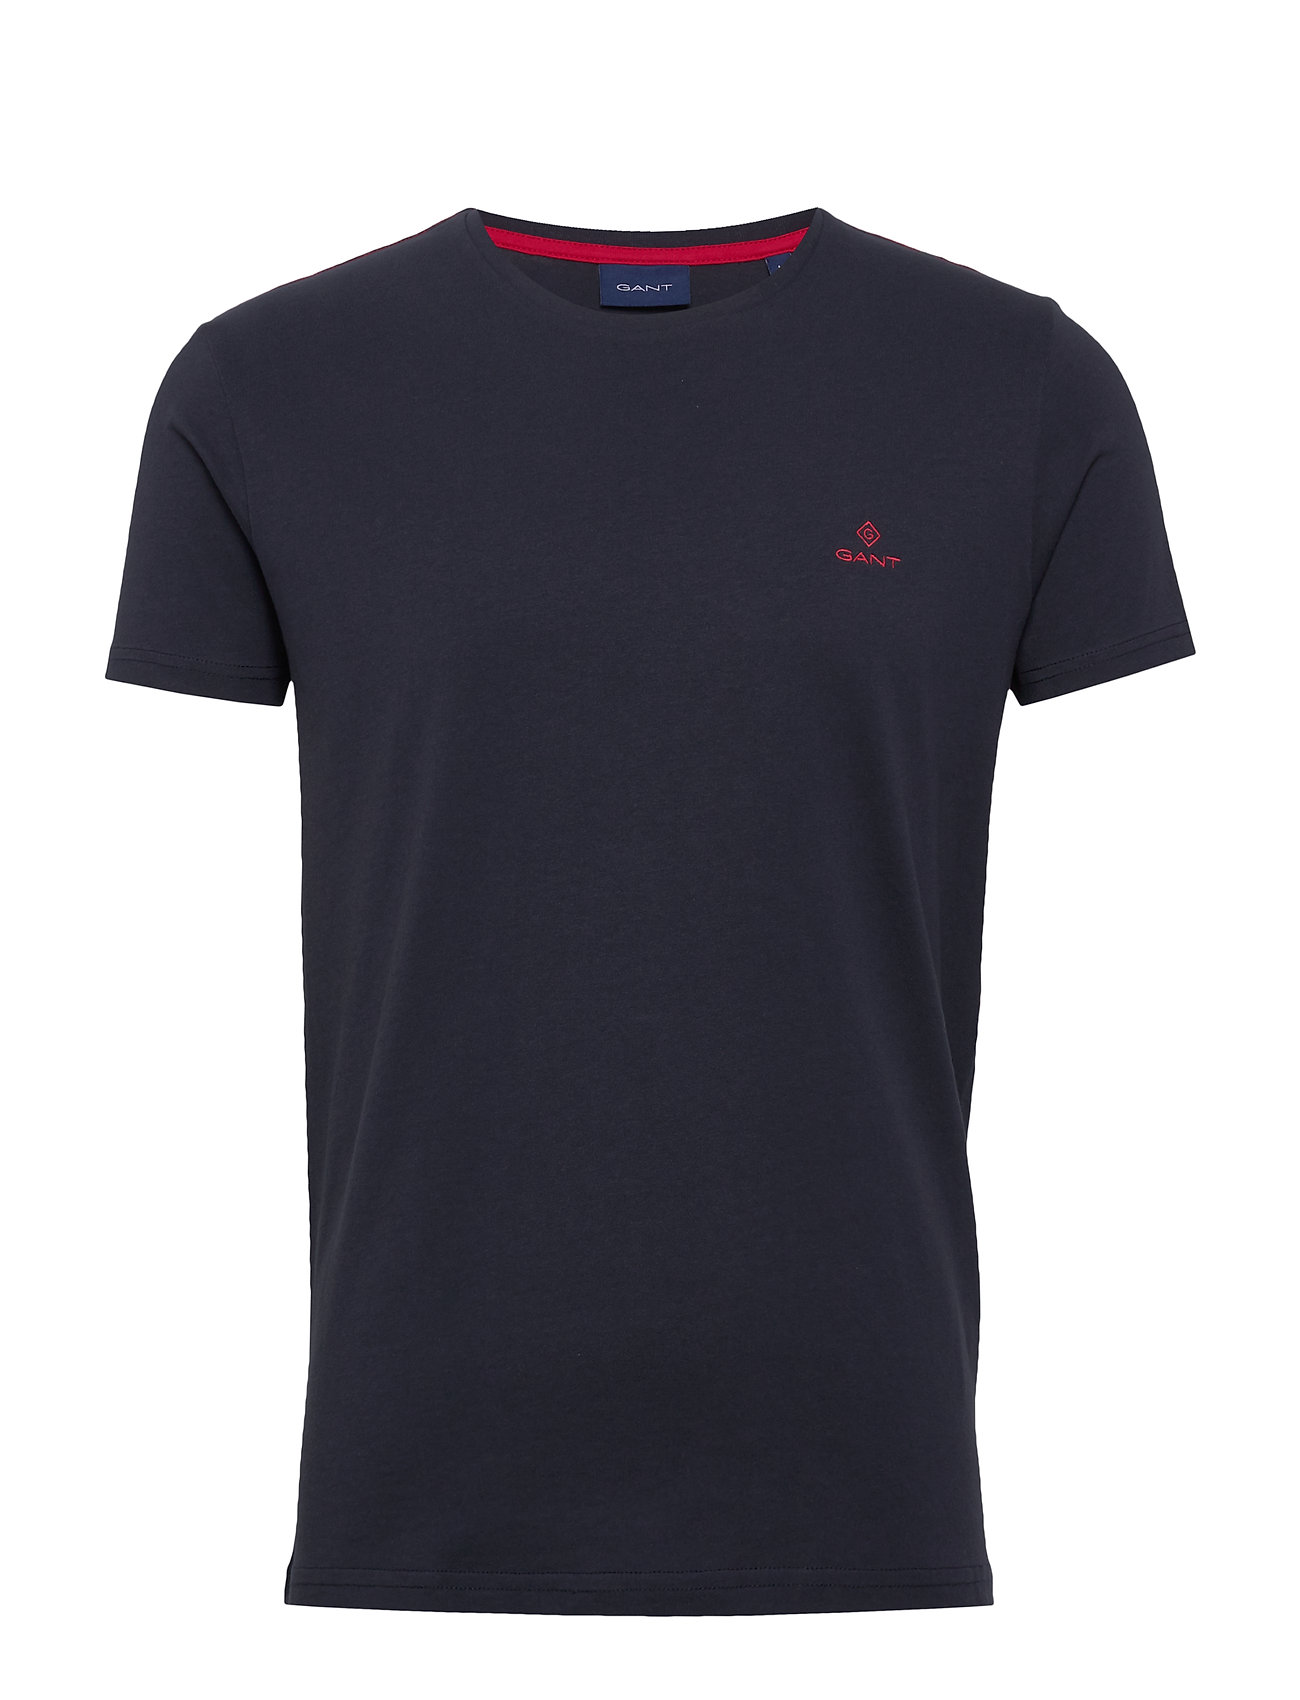 Gant CONTRAST LOGO SS T-SHIRT - EVENING BLUE